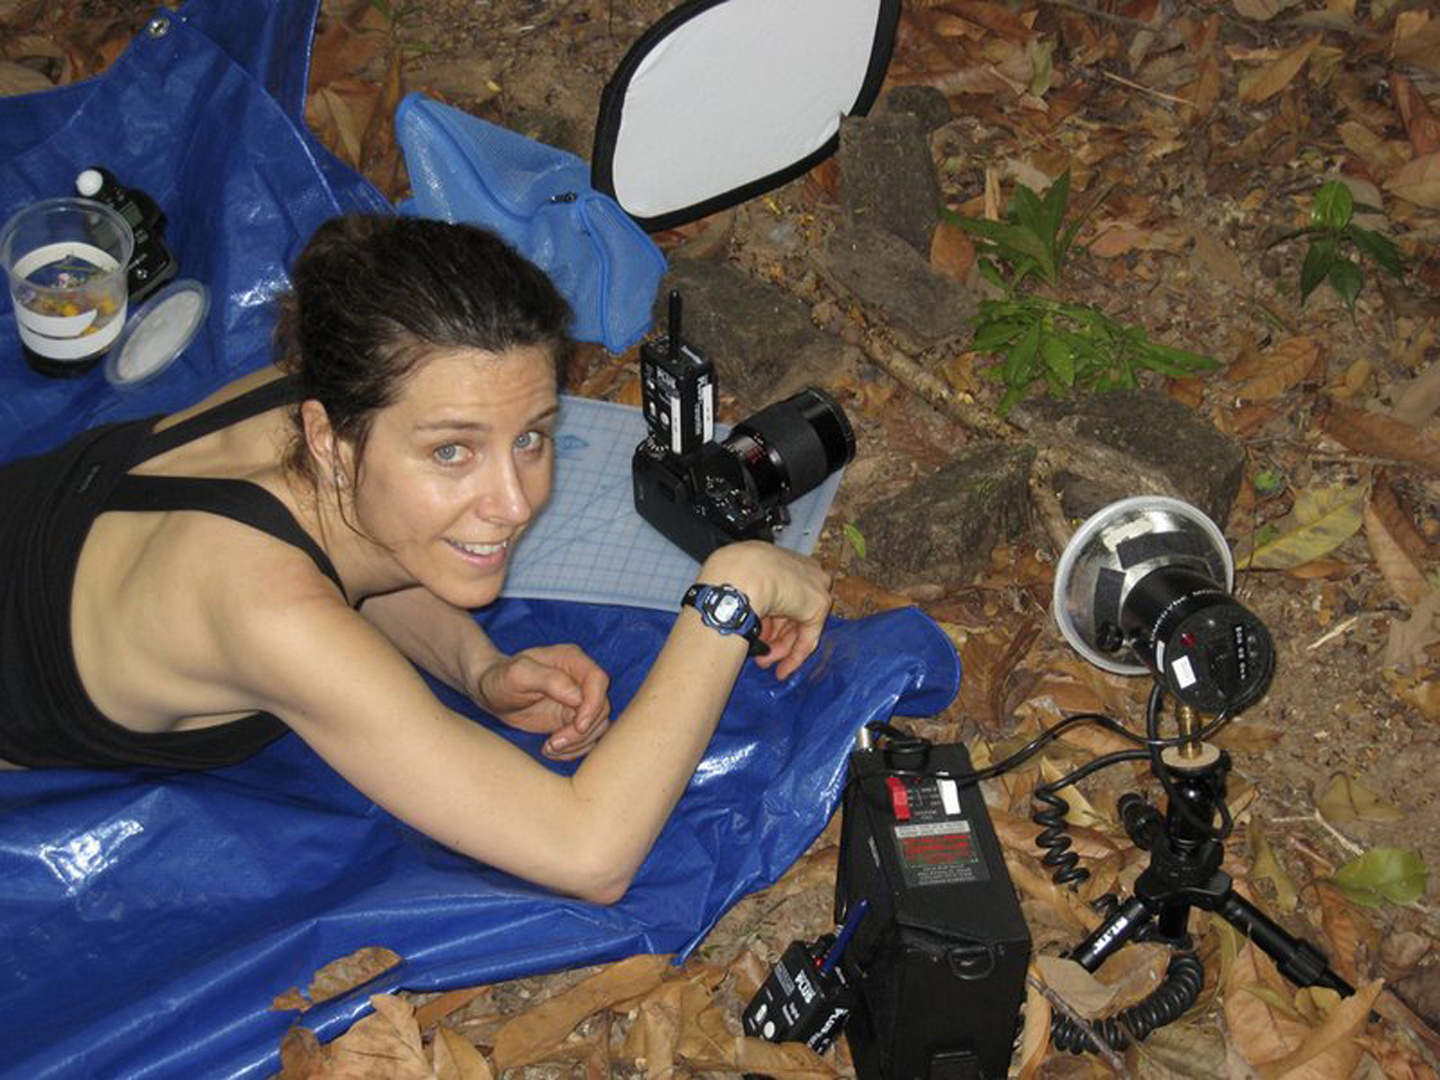 Attempting to photograph leafcutter ants for the first time. I found it impossible to do with a film camera. Next trip I switched to digital.